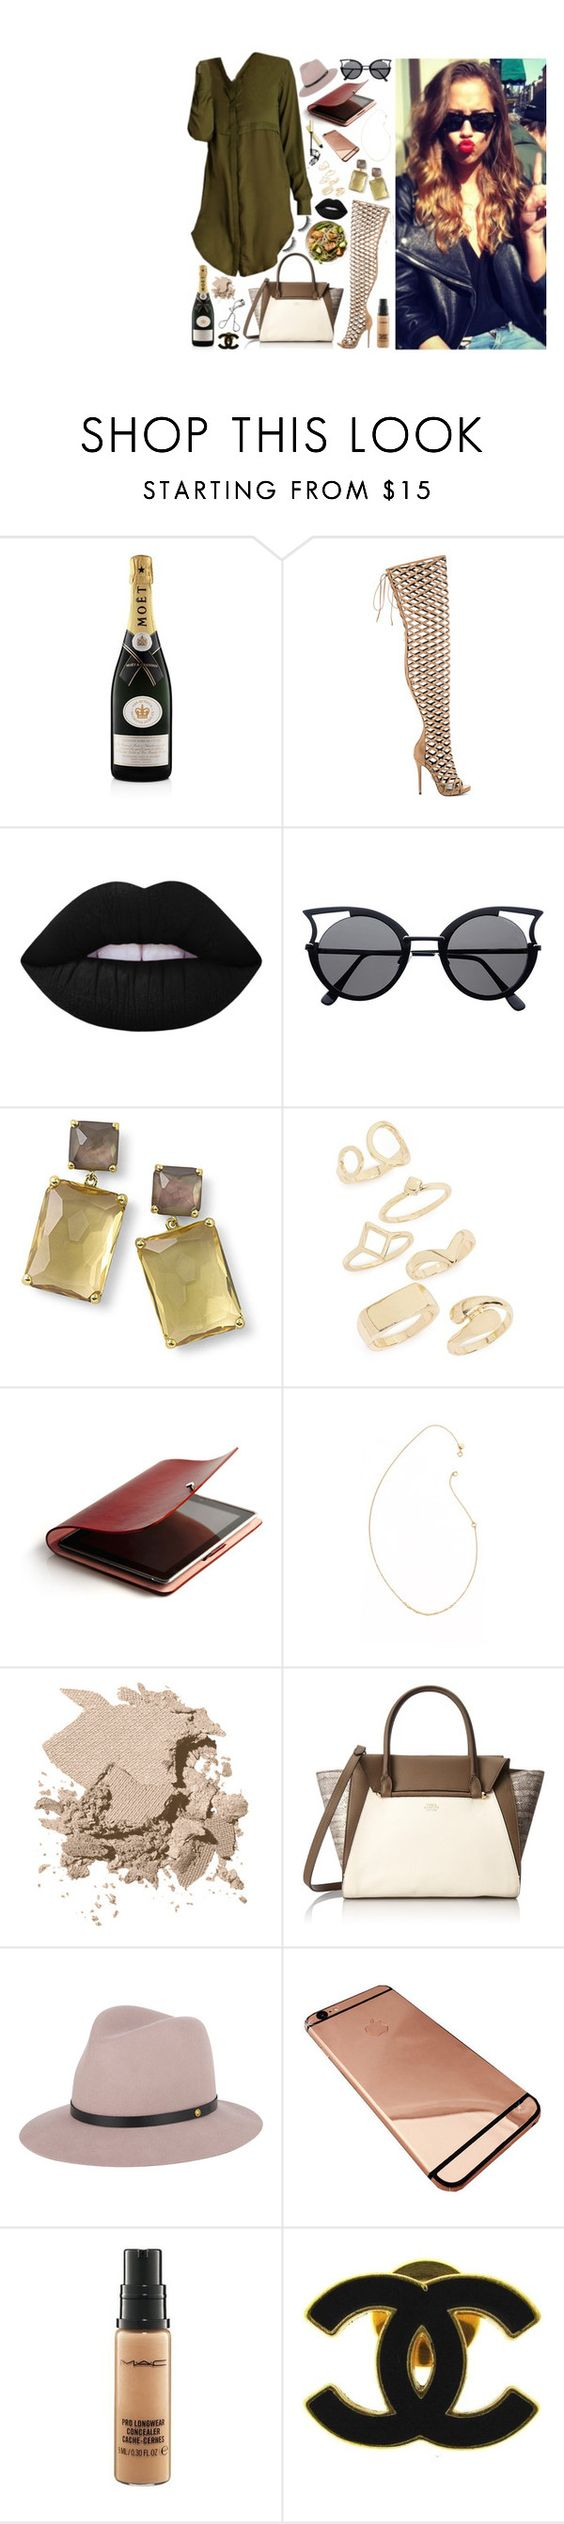 """Untitled #88"" by missamberleigh ❤ liked on Polyvore featuring MoÃ«t & Chandon, Lust For Life, Lime Crime, Ippolita, Topshop, blanca monrós gómez, Bobbi Brown Cosmetics, Vince Camuto, rag & bone and MAC Cosmetics"